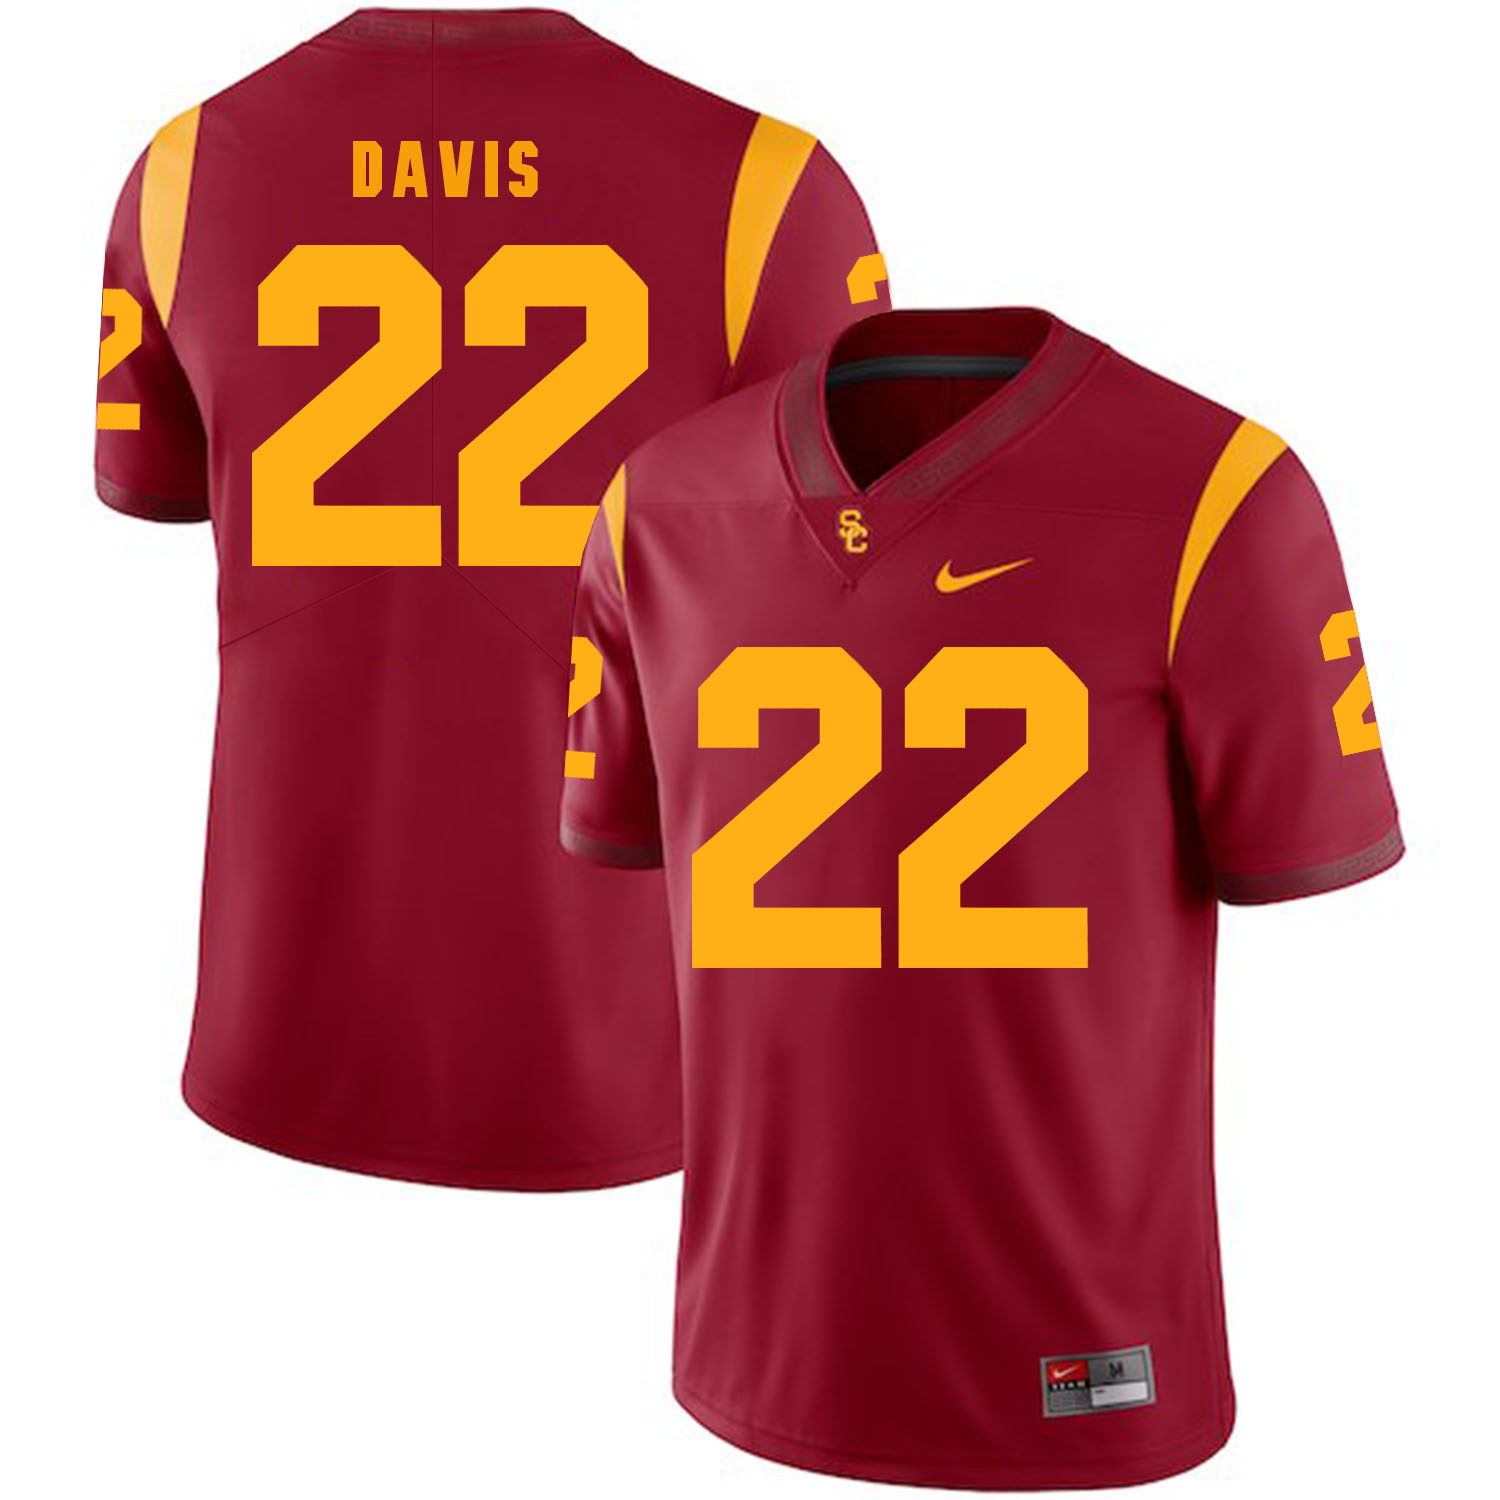 USC Trojans 22 Justin Davis Red College Football Jersey